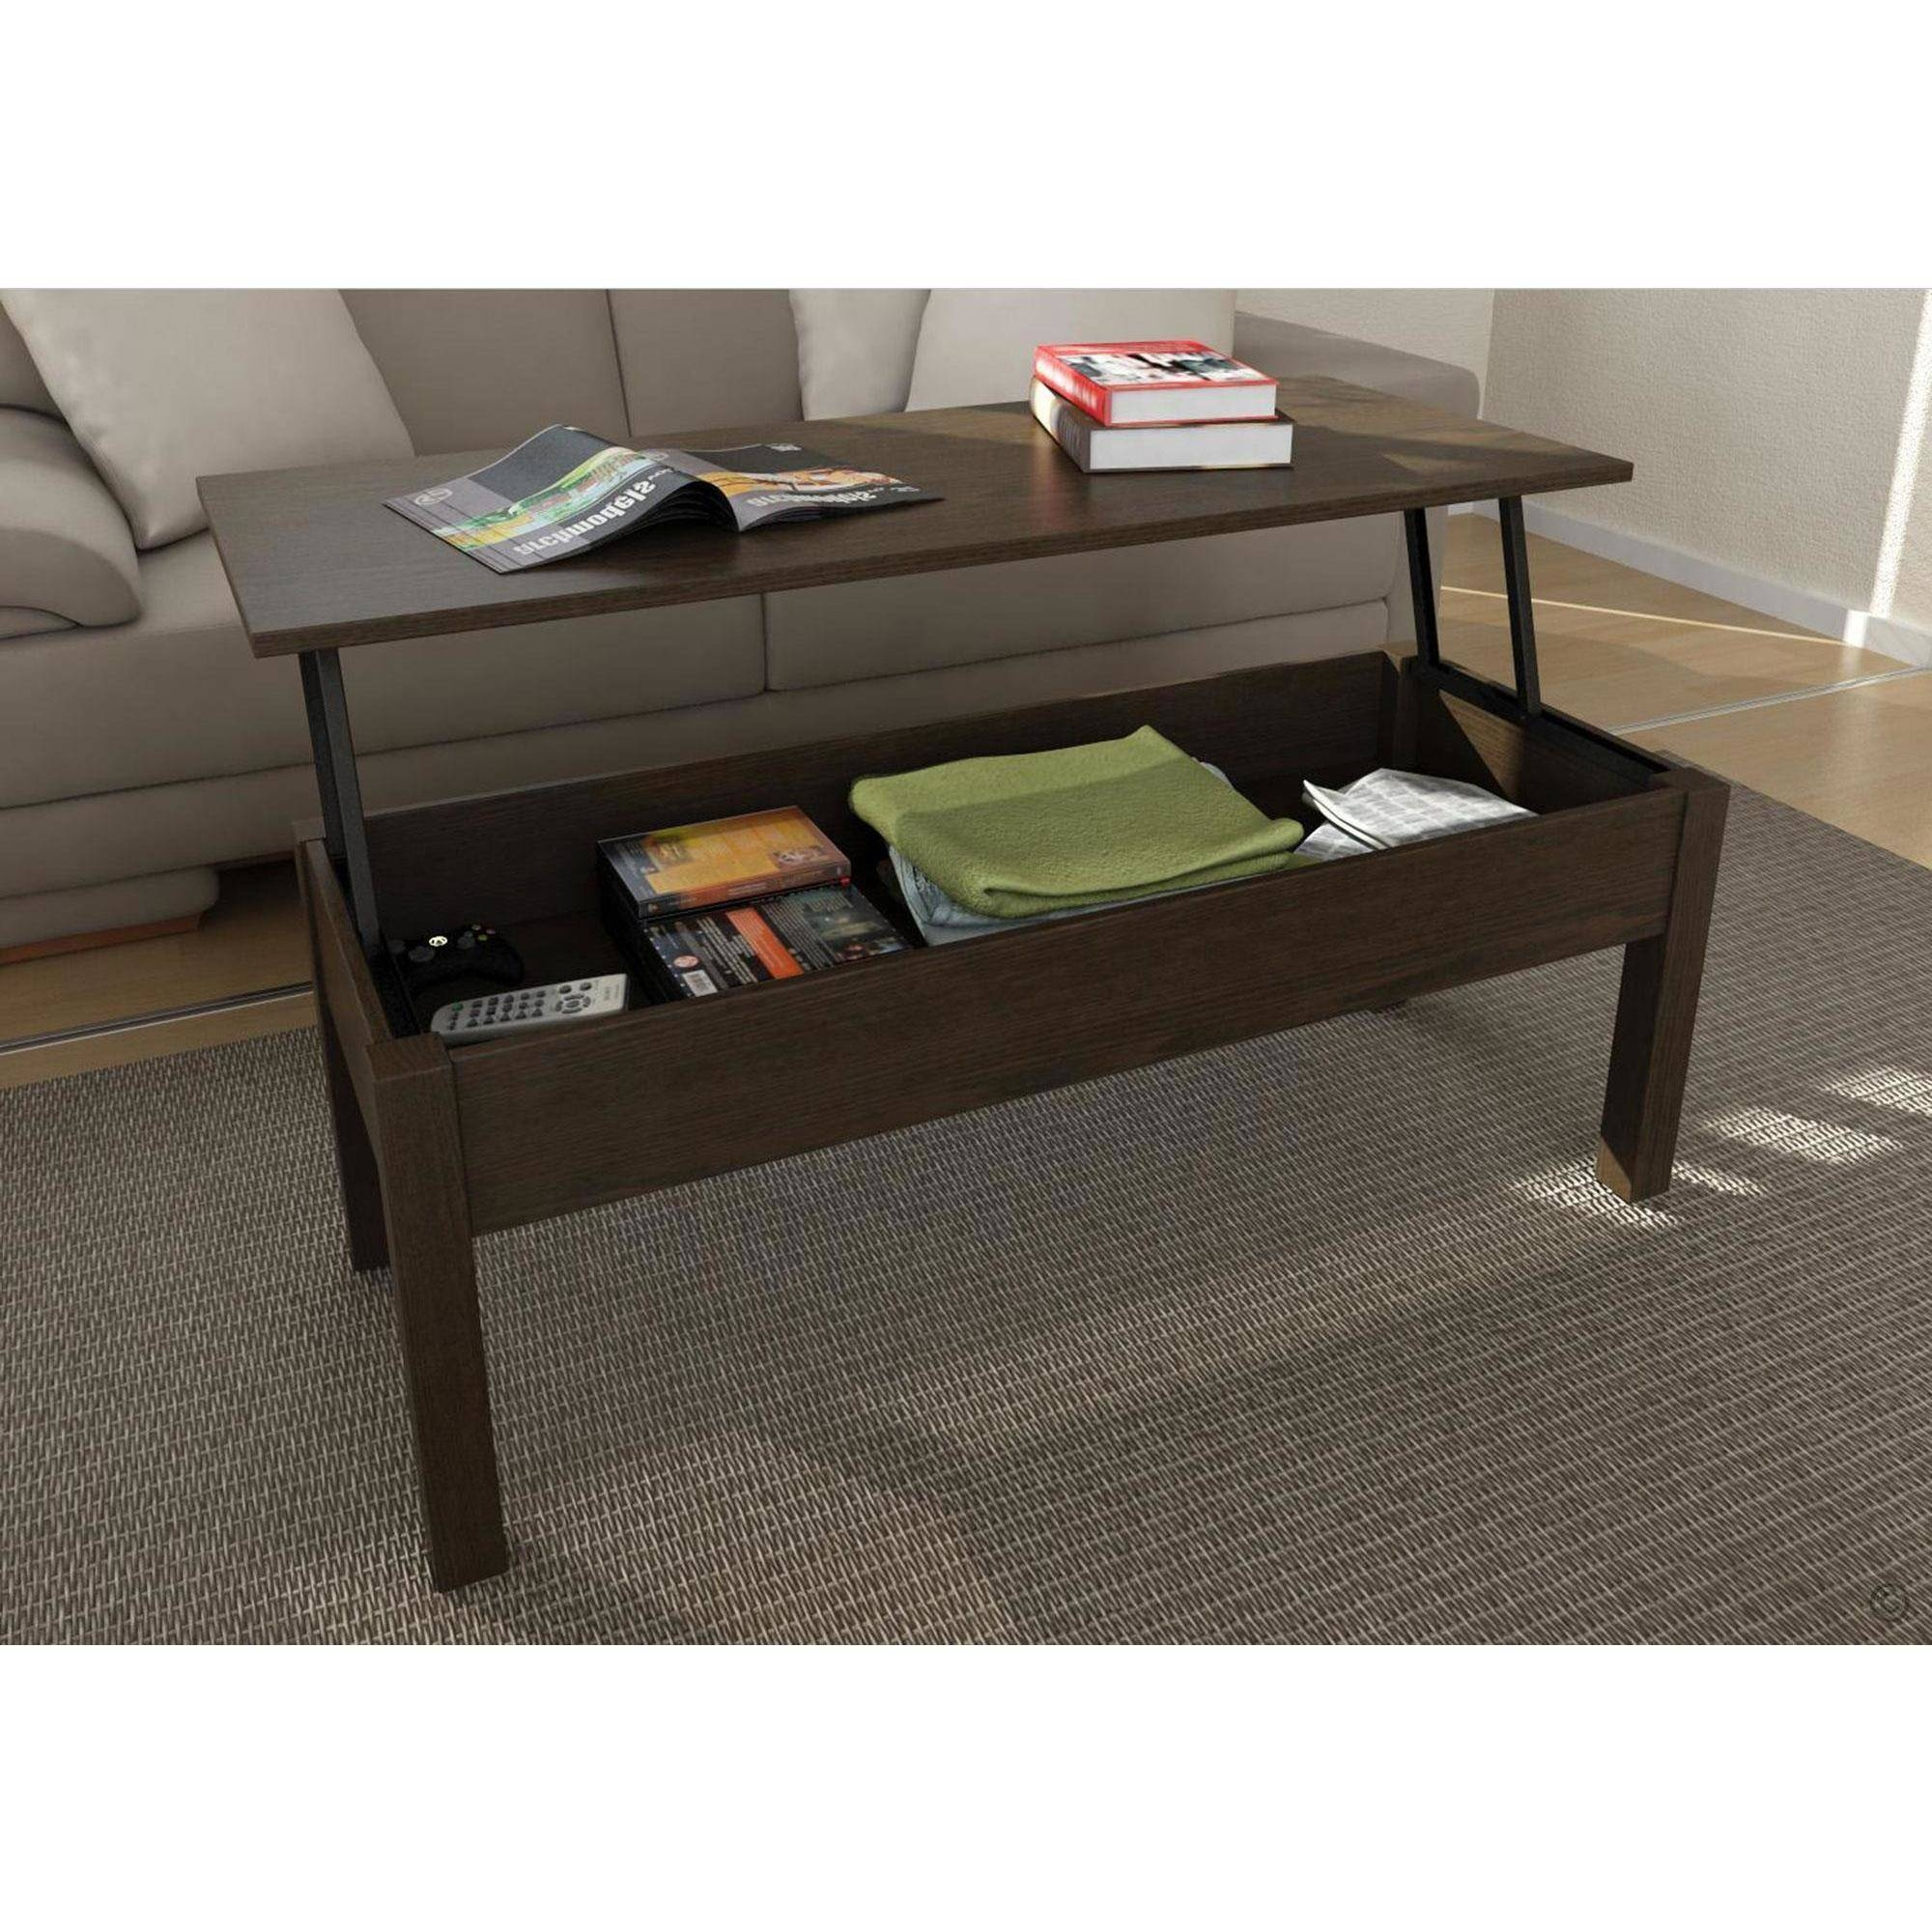 Mainstays Lift-Top Coffee Table, Multiple Colors - Walmart intended for Coffee Tables With Lift Up Top (Image 21 of 30)